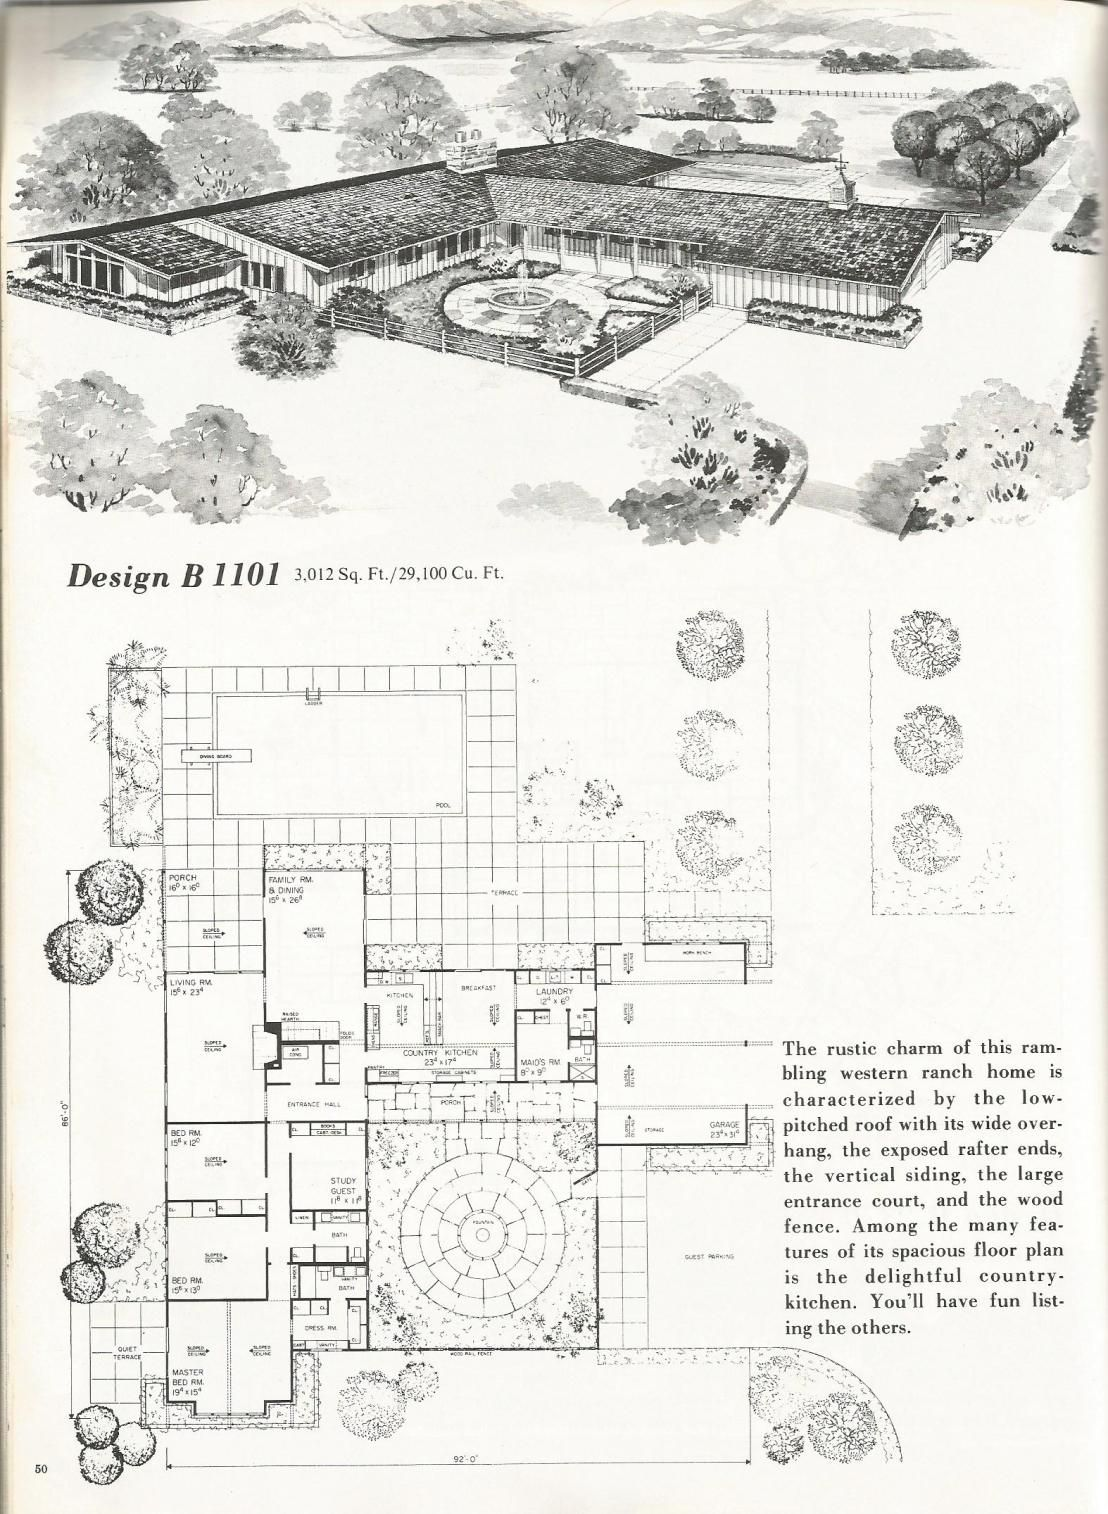 Vintage House Plans 1101 Vintage House Plans Ranch Style Homes House Plans